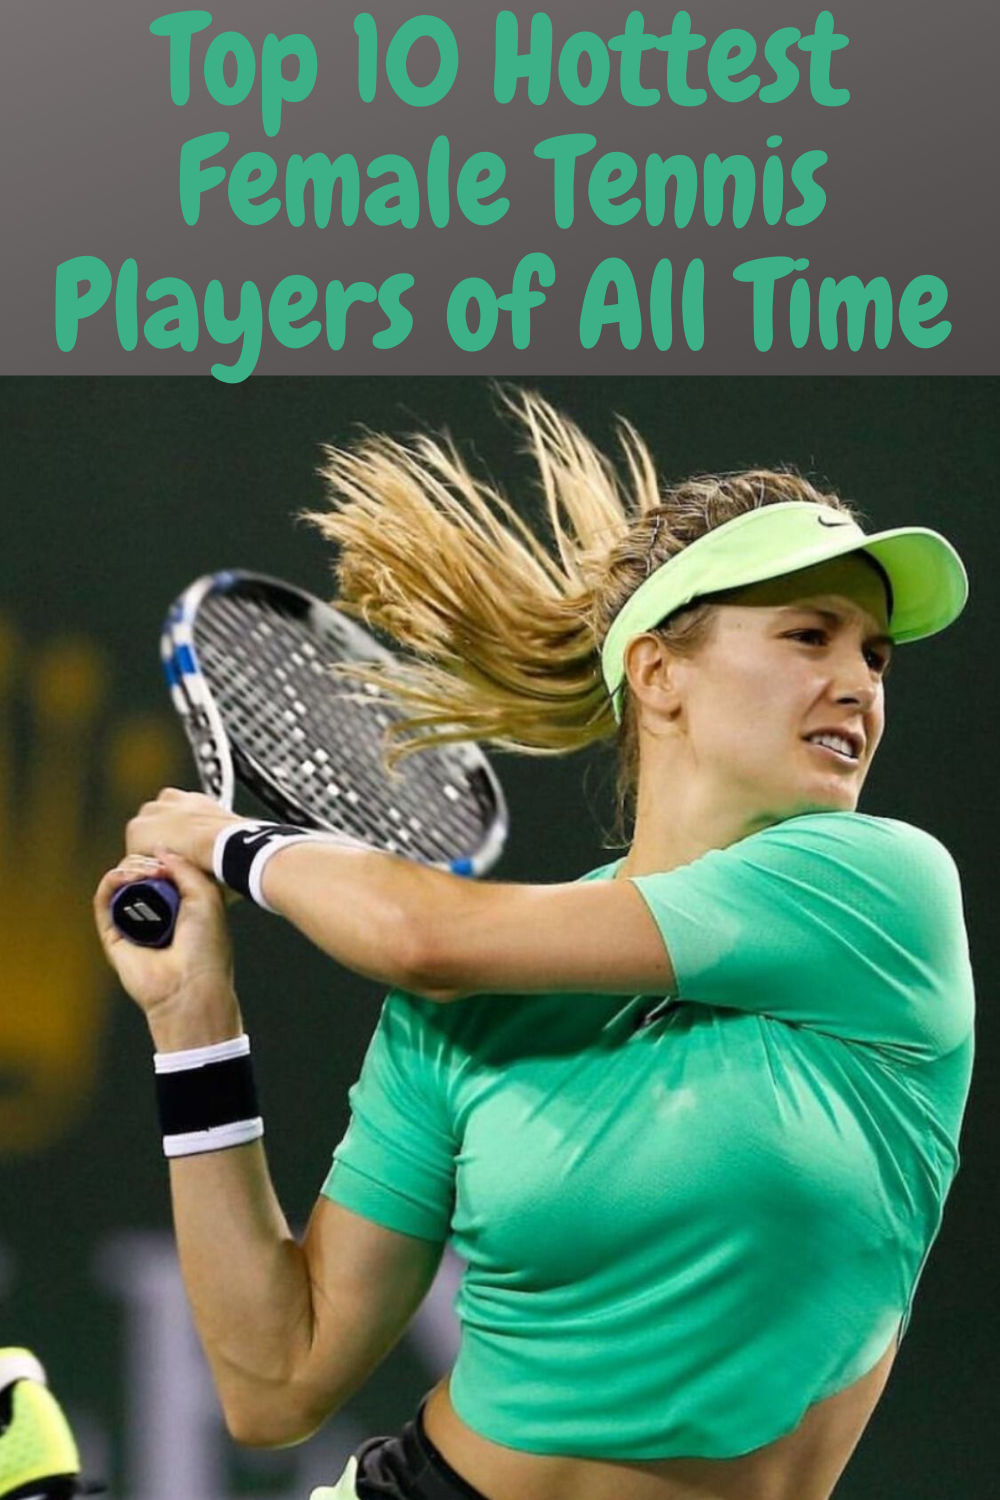 Top 10 Hottest Female Tennis Players Of All Time In 2020 Tennis Players Female Tennis Players Good Movies To Watch